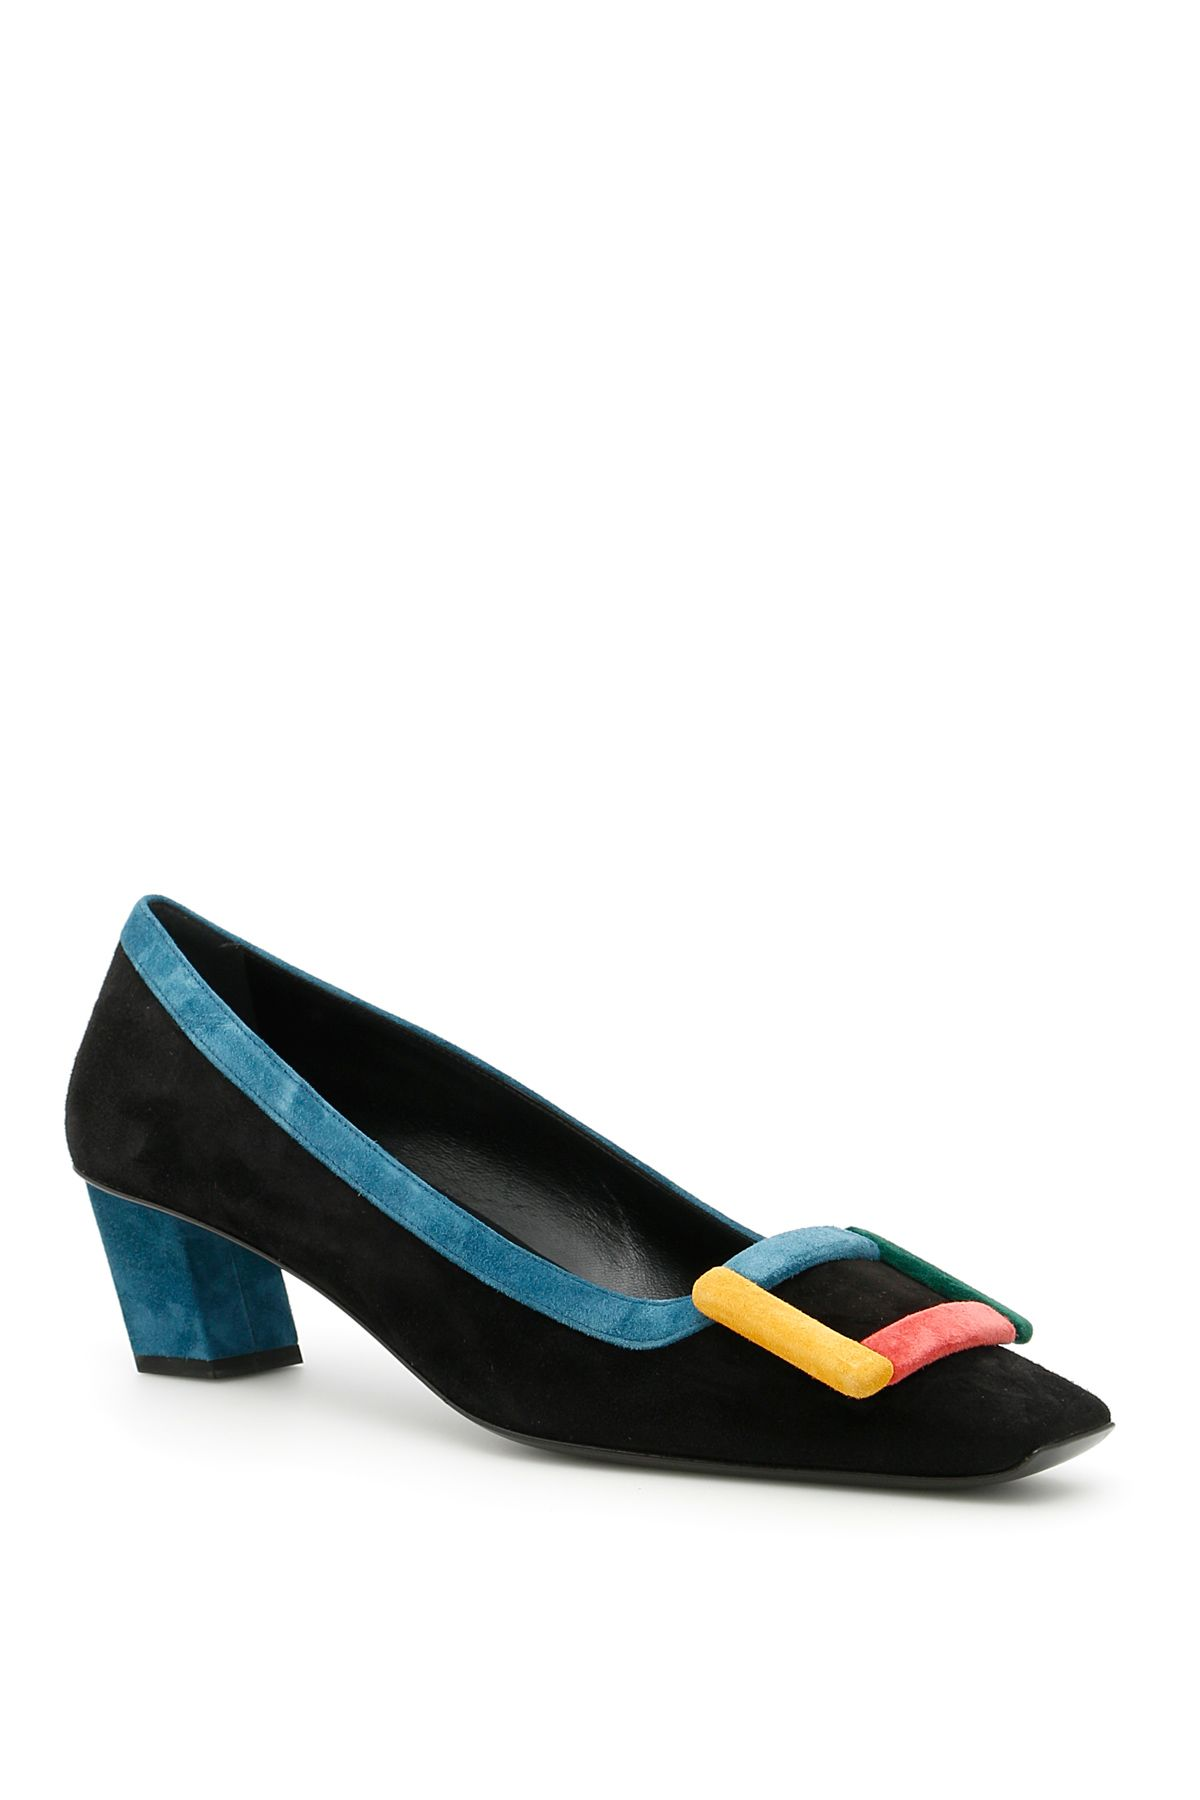 Belle Vivier Graphic Pumps